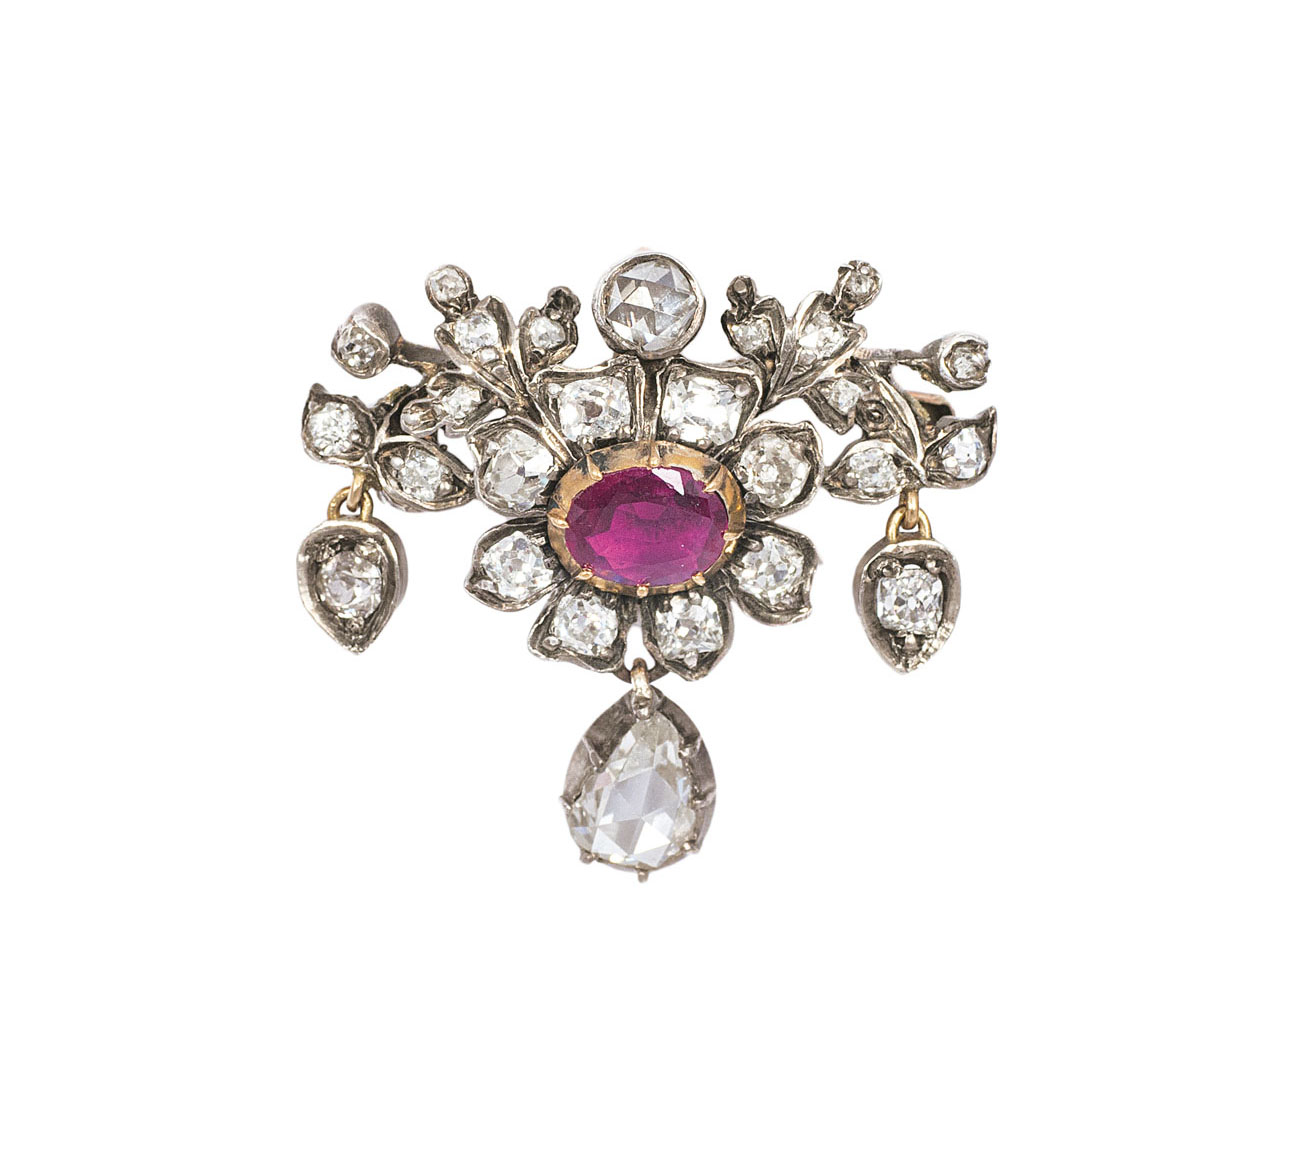 A small, antique diamond ruby brooch